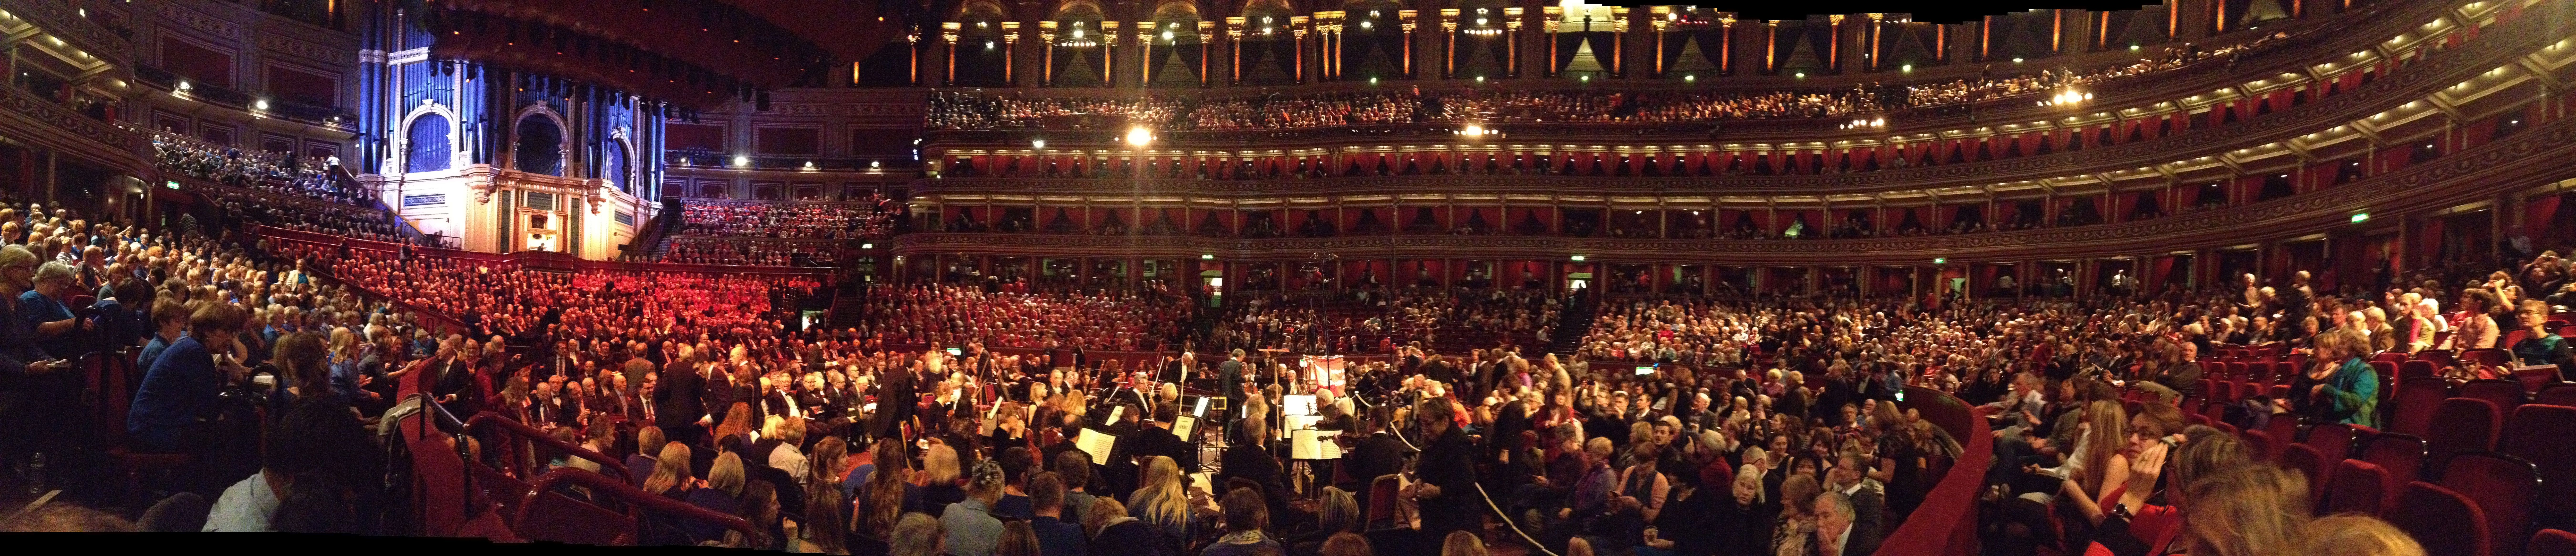 Royal Albert Hall Scratch Messiah 2014 panorama